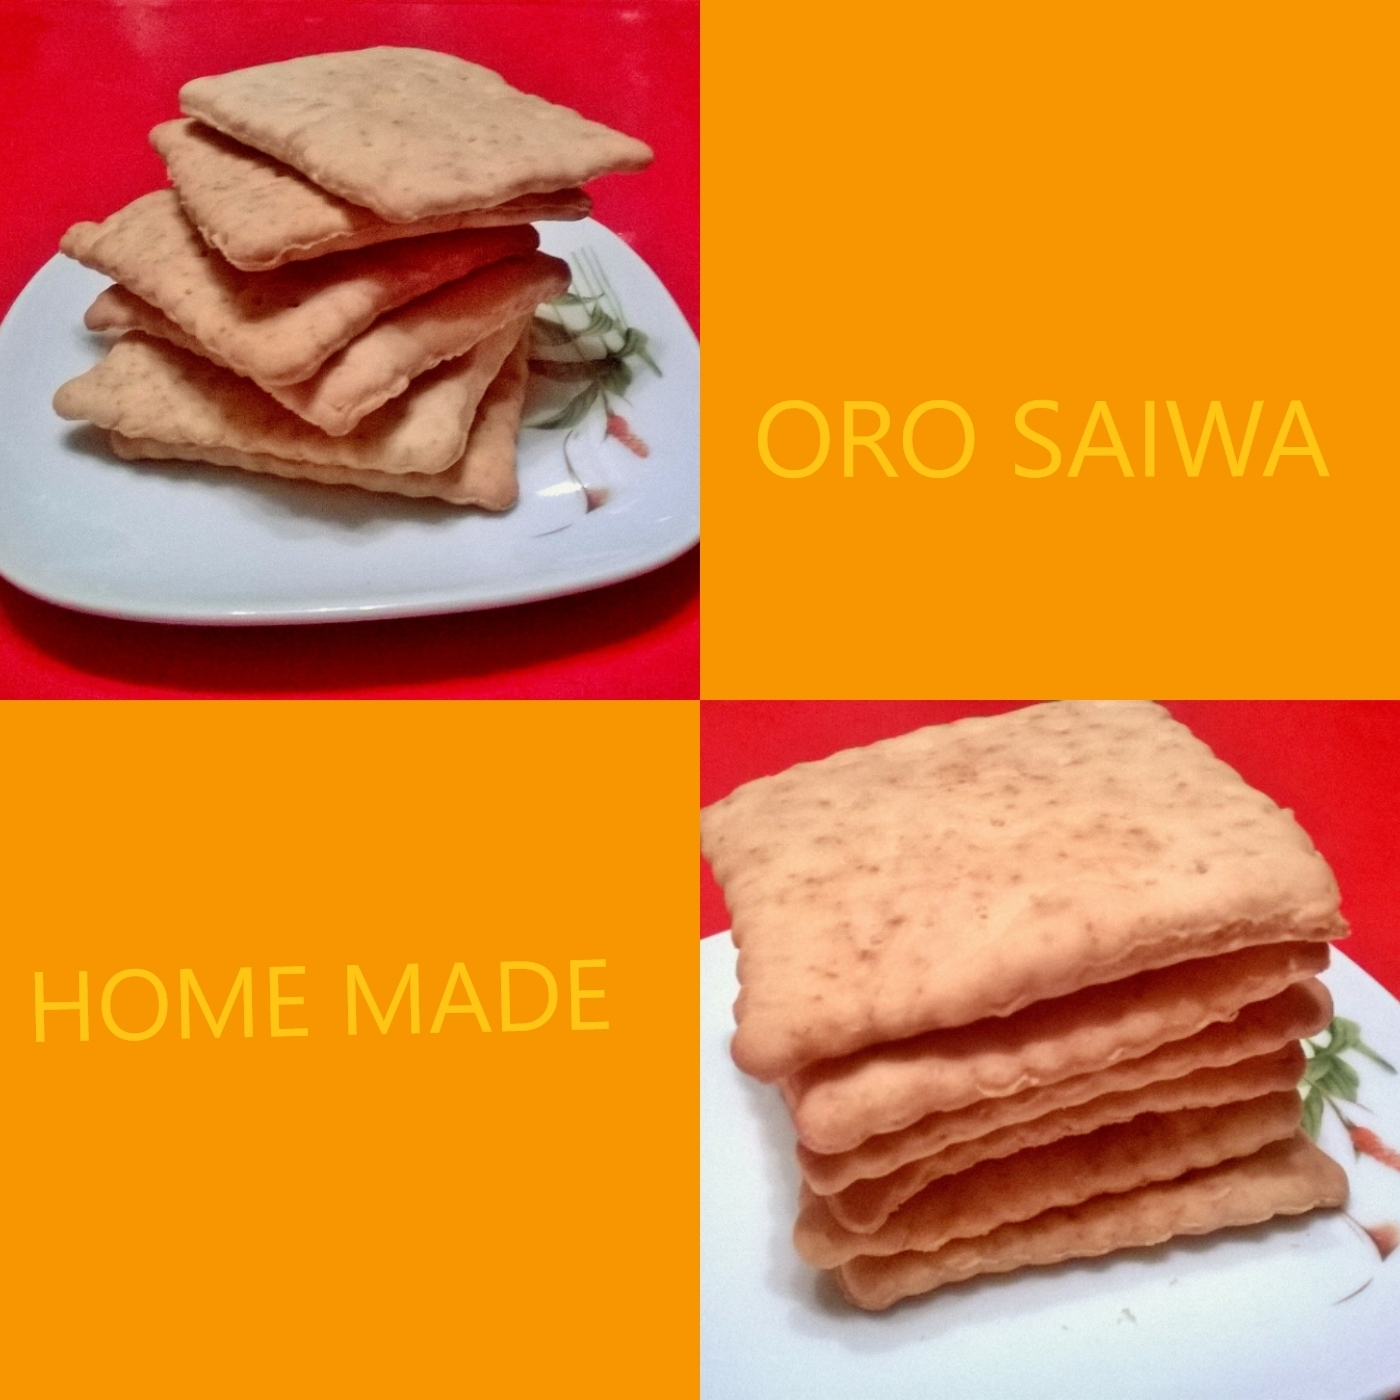 ORO SAIWA HOME MADE